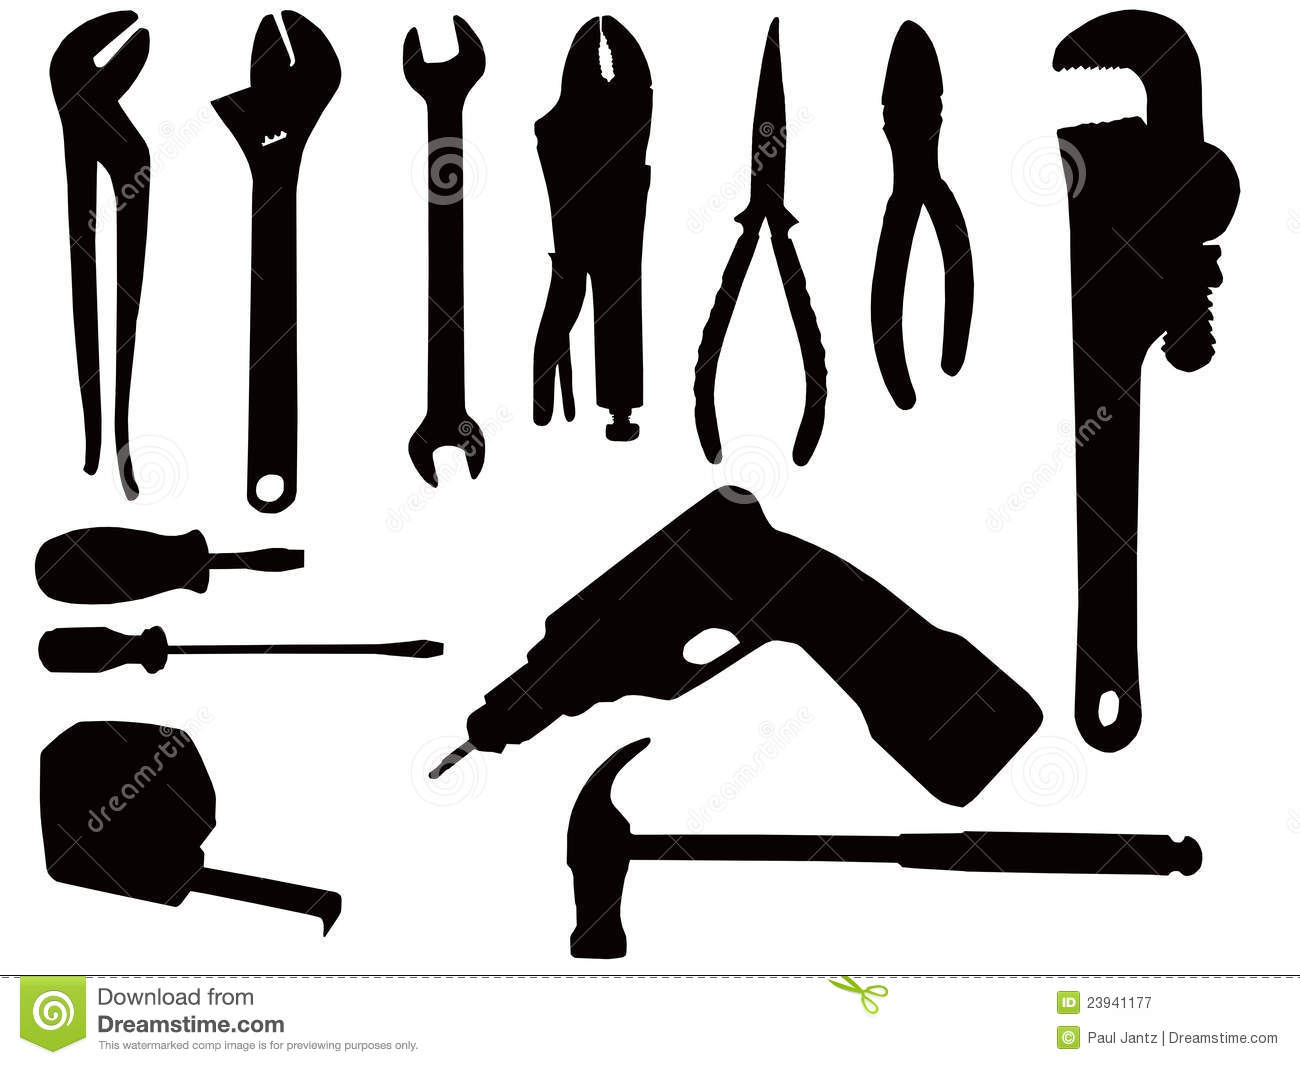 Hand tool silhouettes stock illustration. Illustration of ...